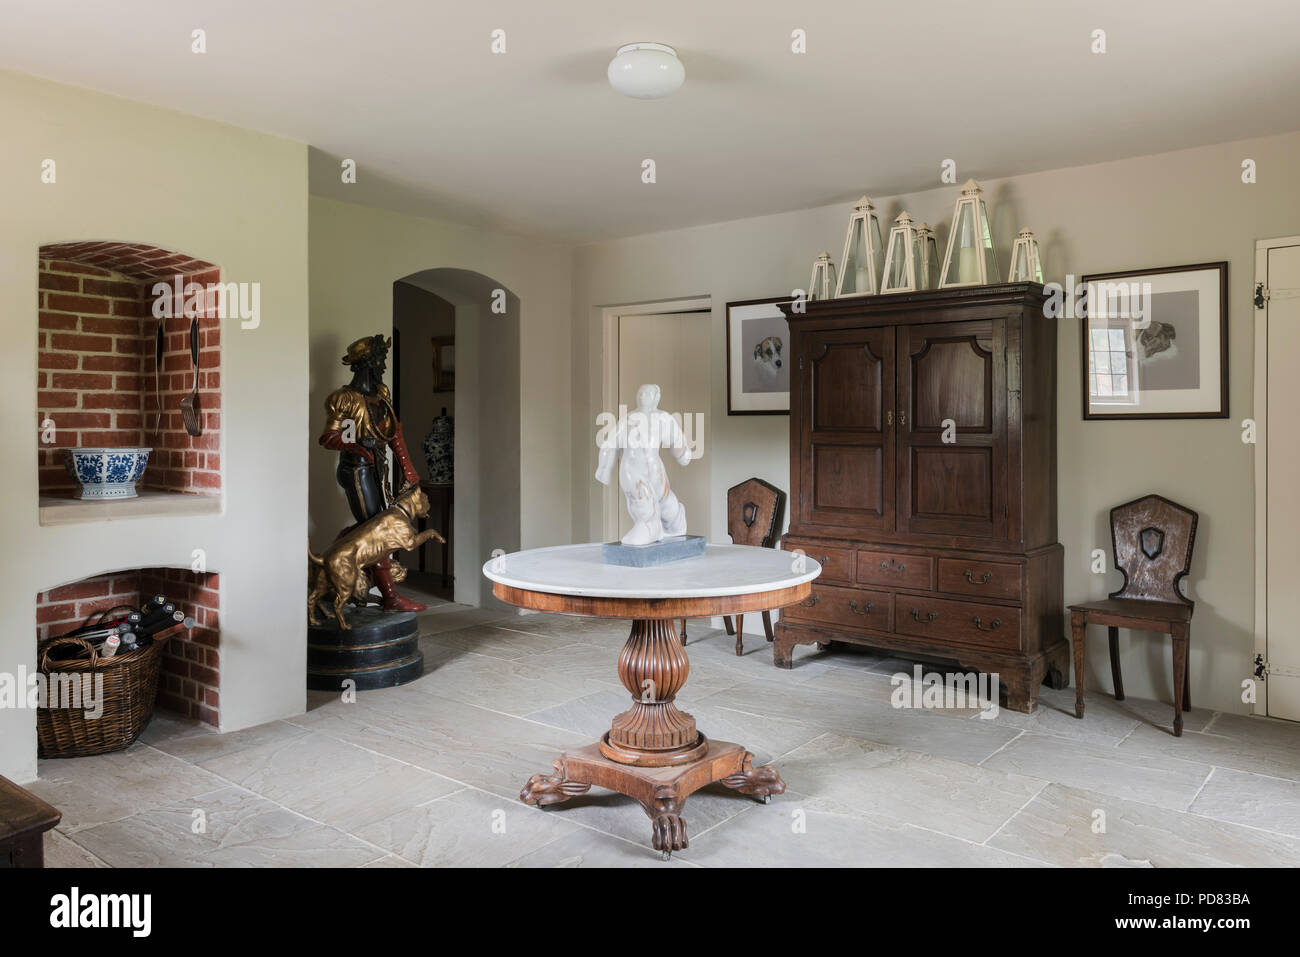 Claw footed table with marble top in entrance hall with flagstone flooring Stock Photo